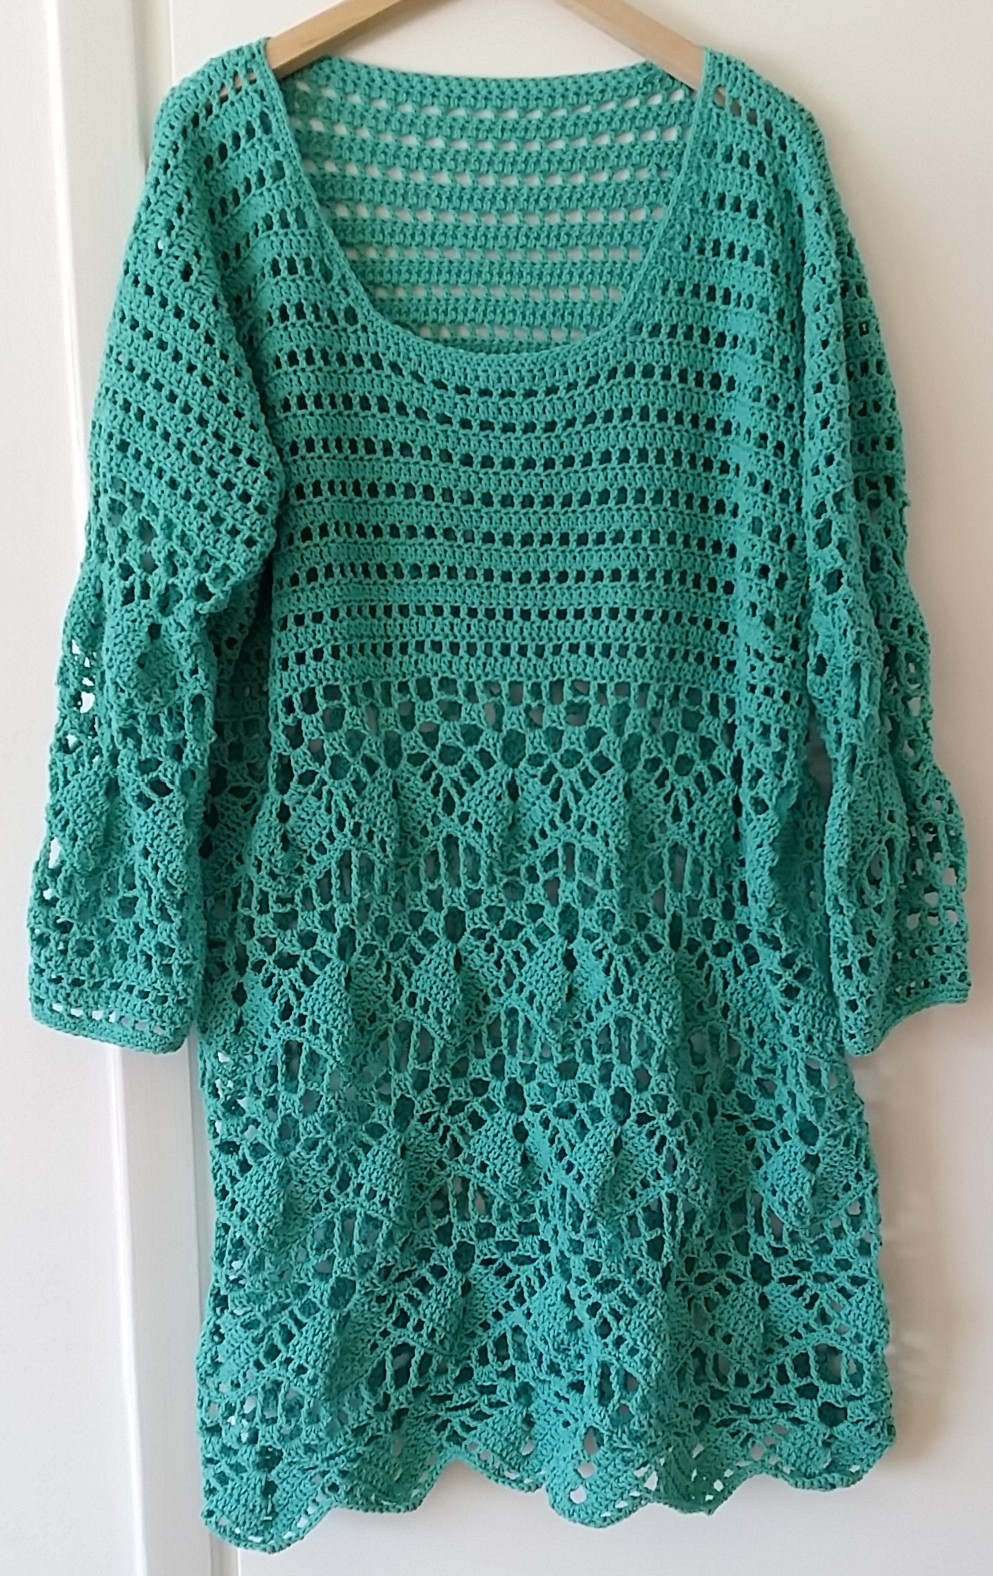 crochet tunic lace dress virkad grön tunika klänning spets